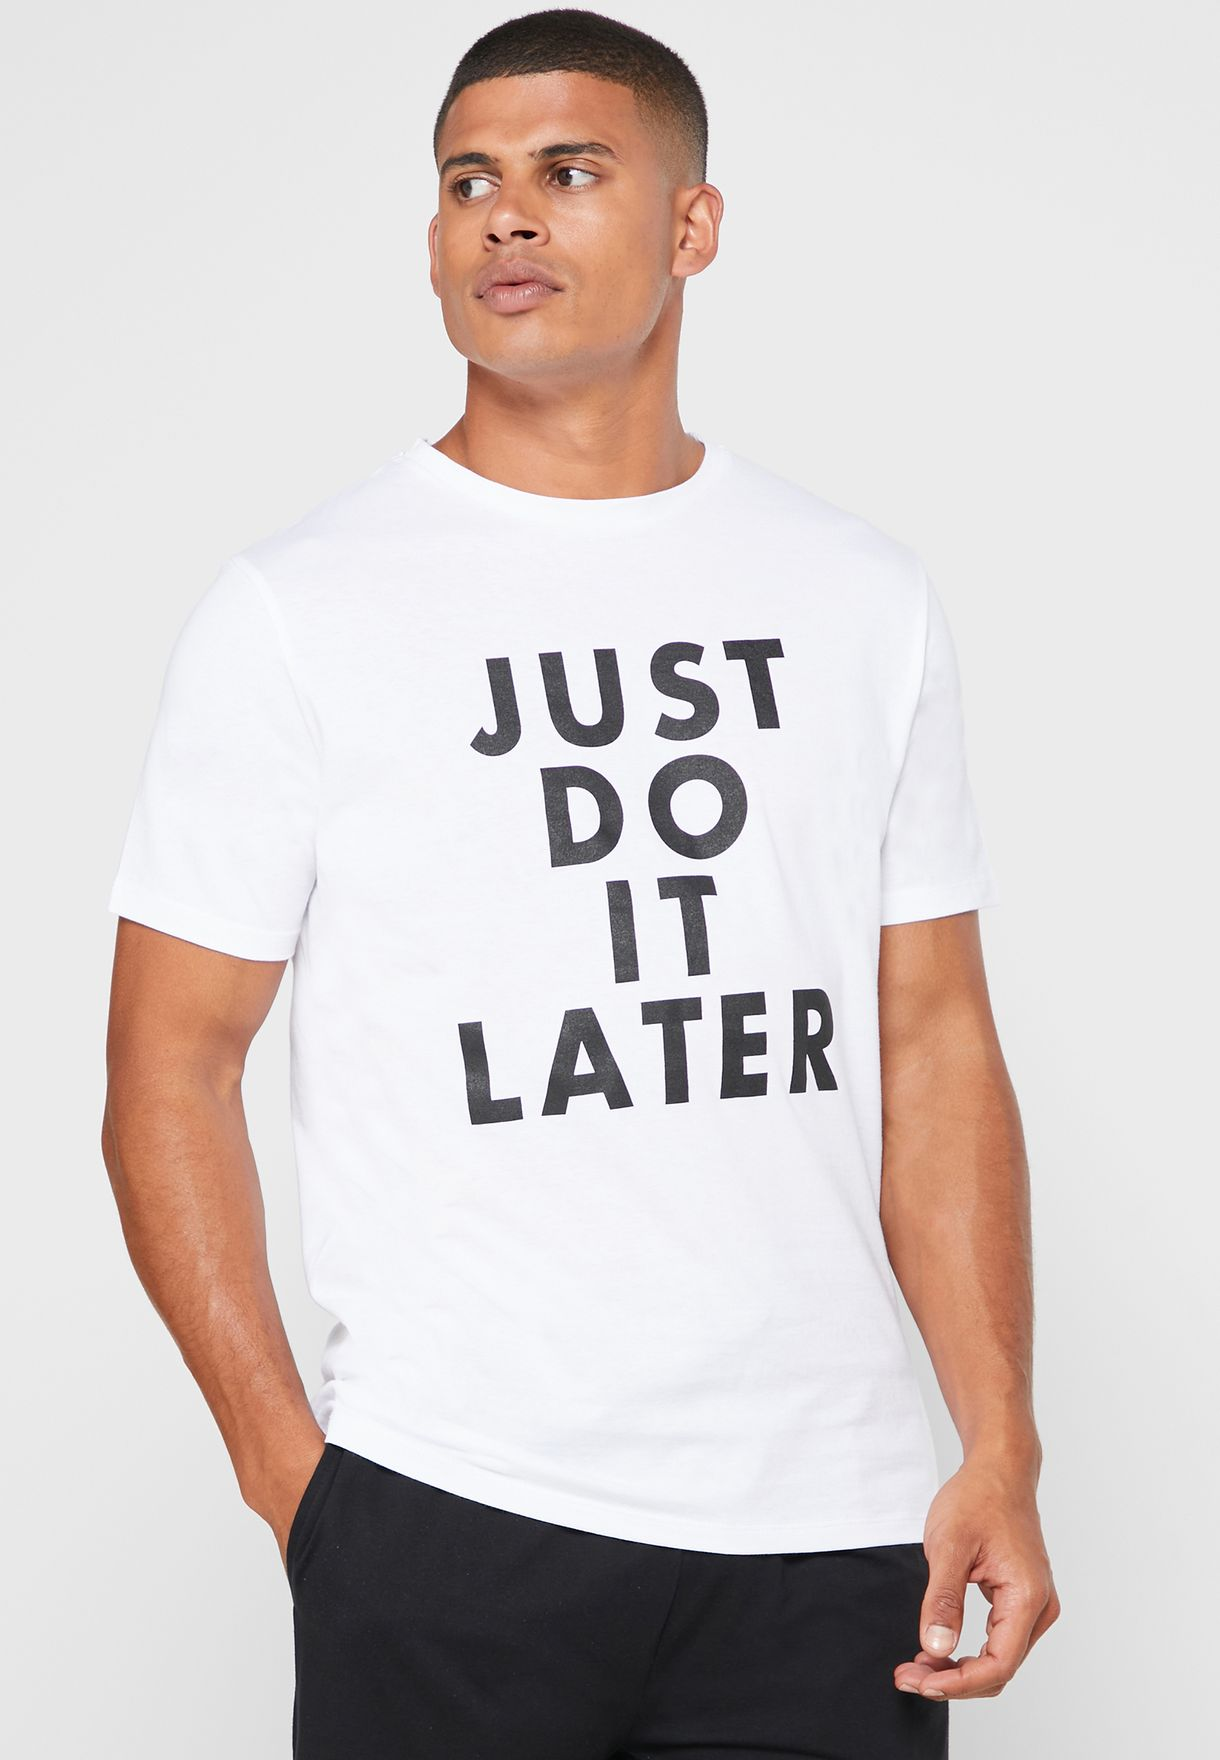 Just Do It Later T-Shirt & Short Pyjama Set